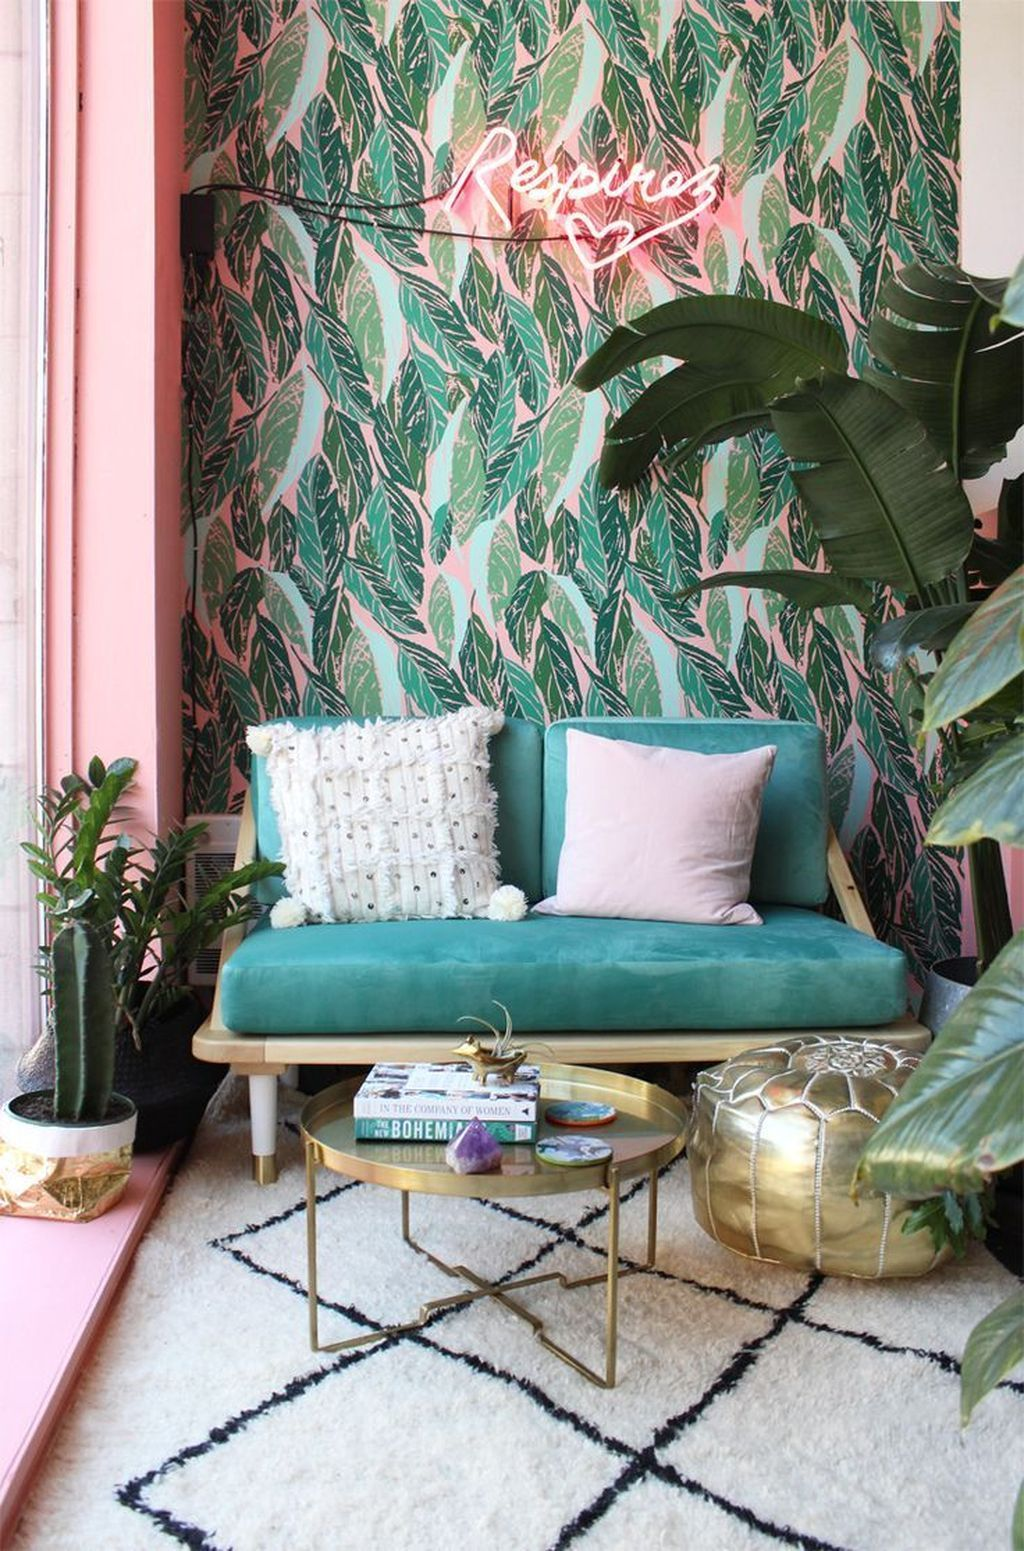 46 Pink Tropical Bedroom Design And Decorating Ideas No Matter If You Stay In A High Rise Urban Apartment Or A Retro Zuhause Vintage Einrichtungen Haus Deko